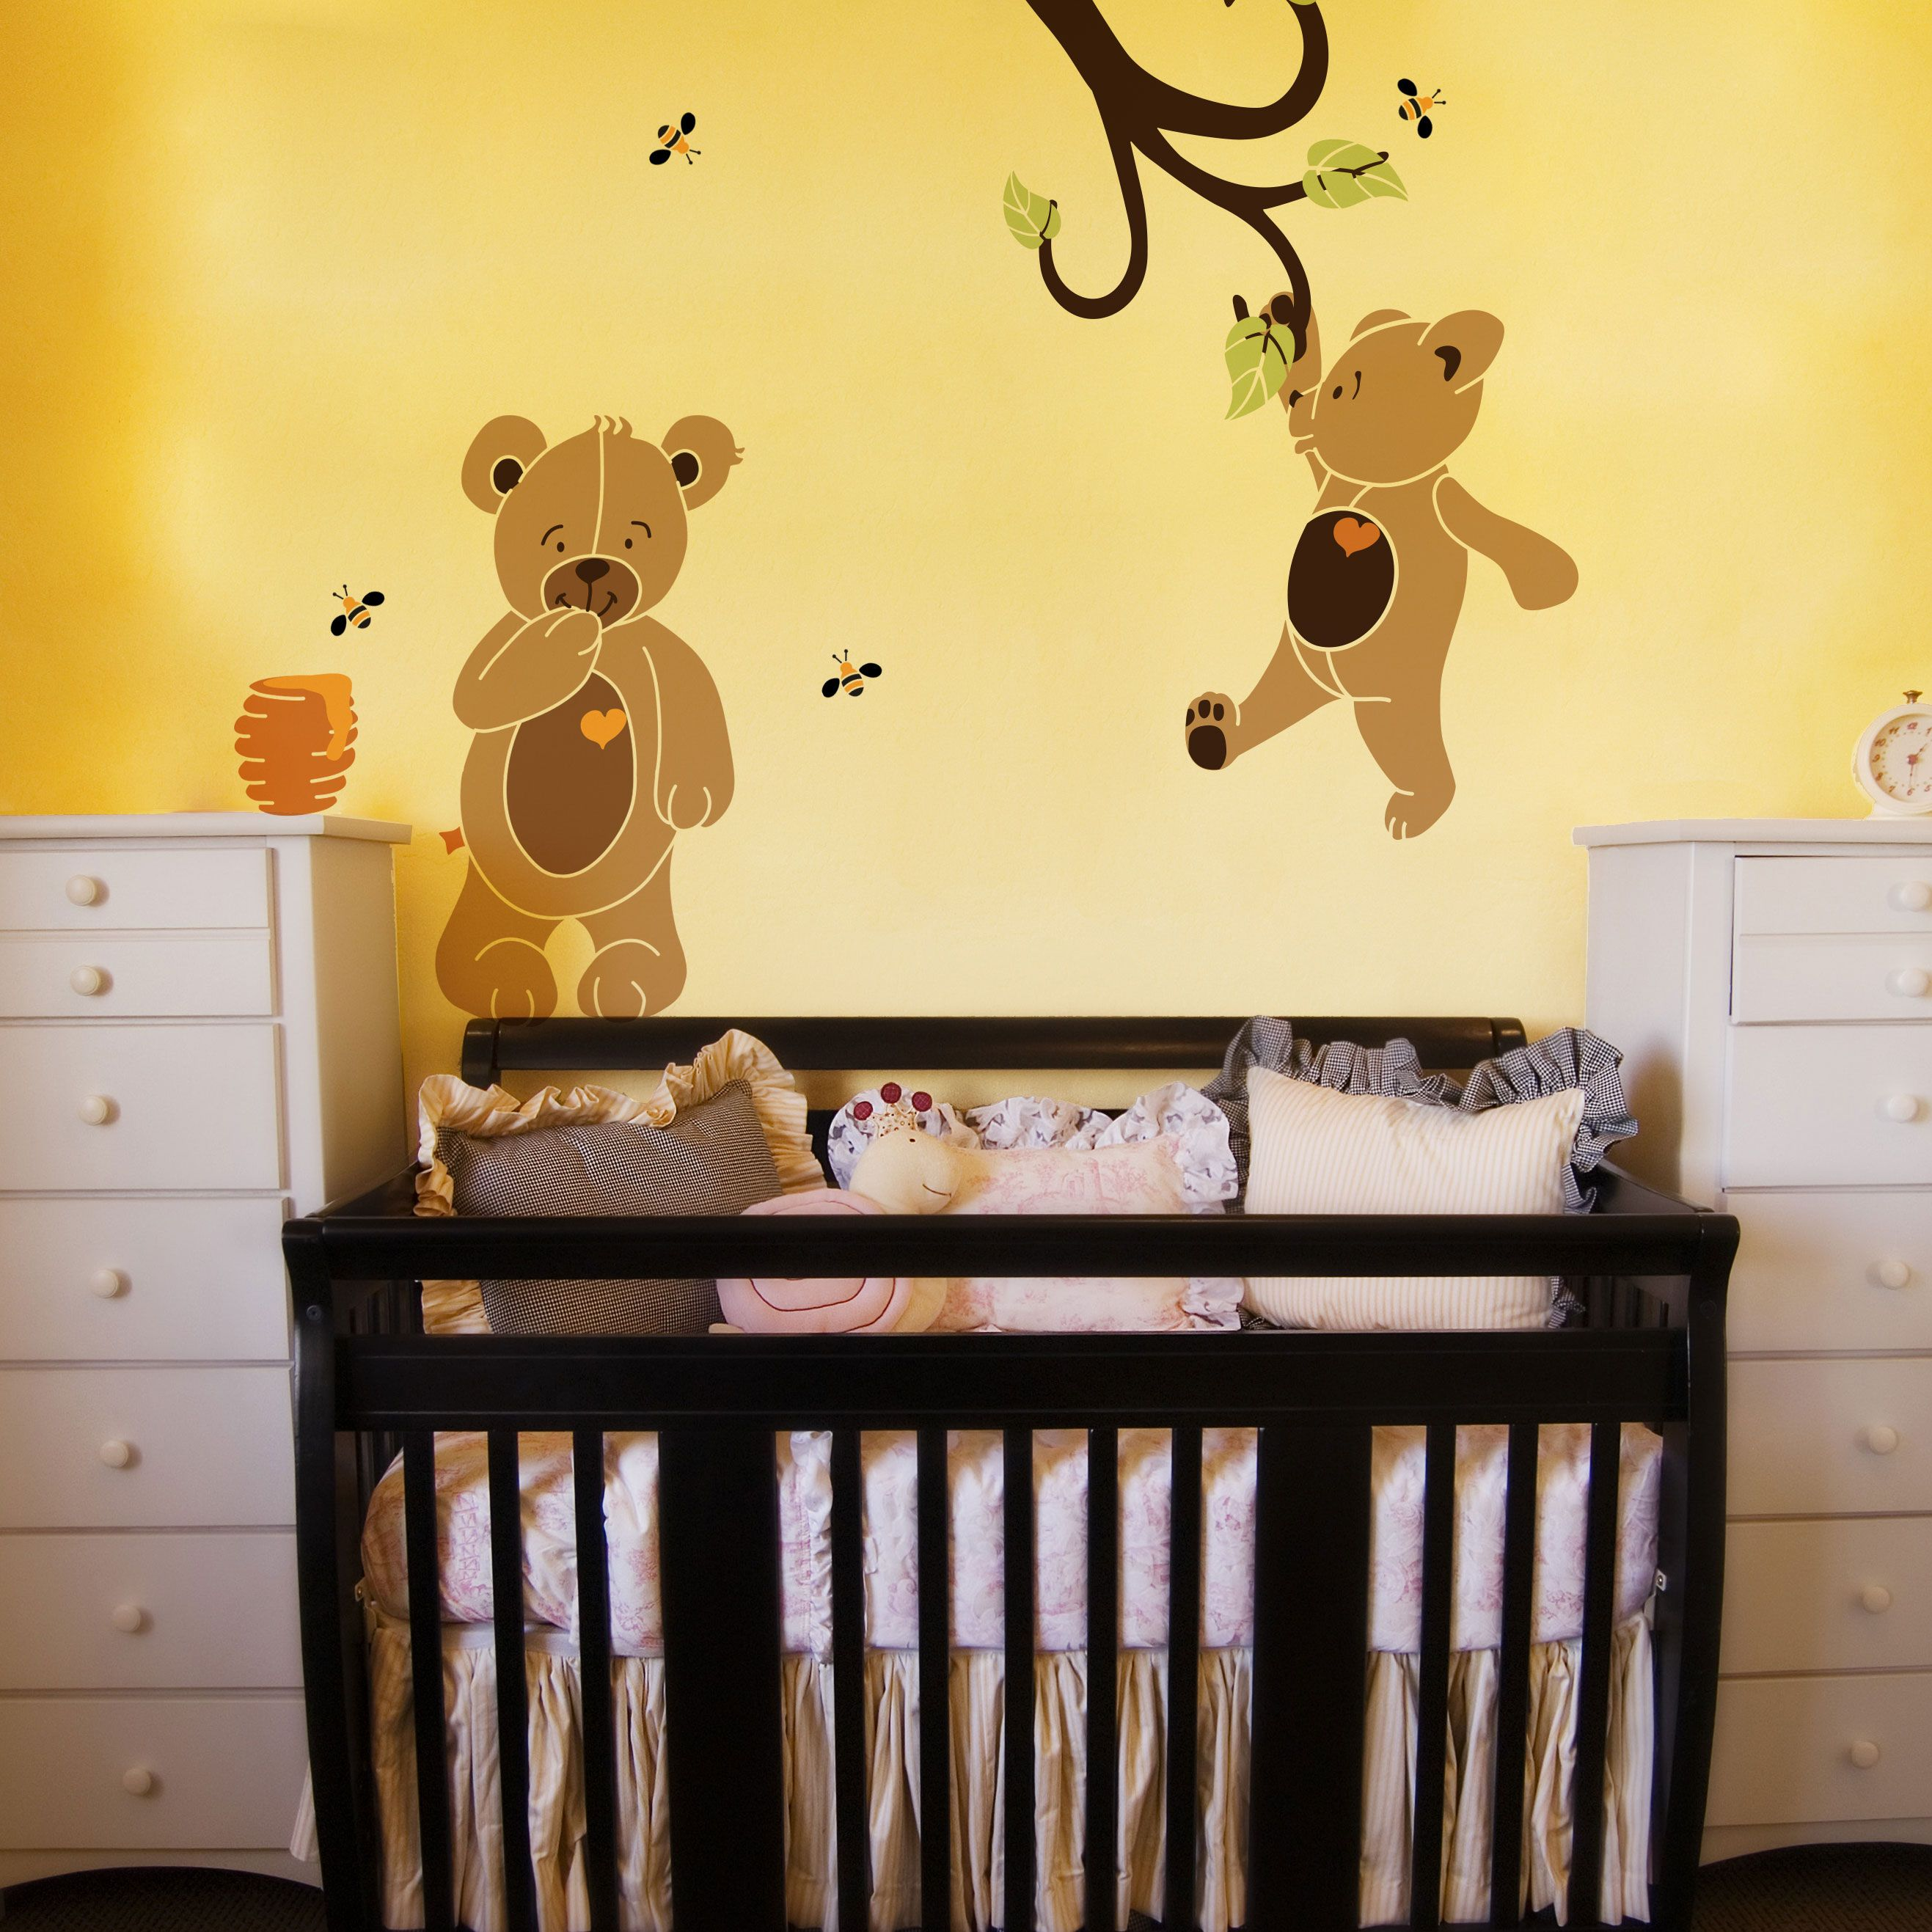 Teddy Bear Wall Stencil Kit | Teddy bear, Stenciling and Nursery